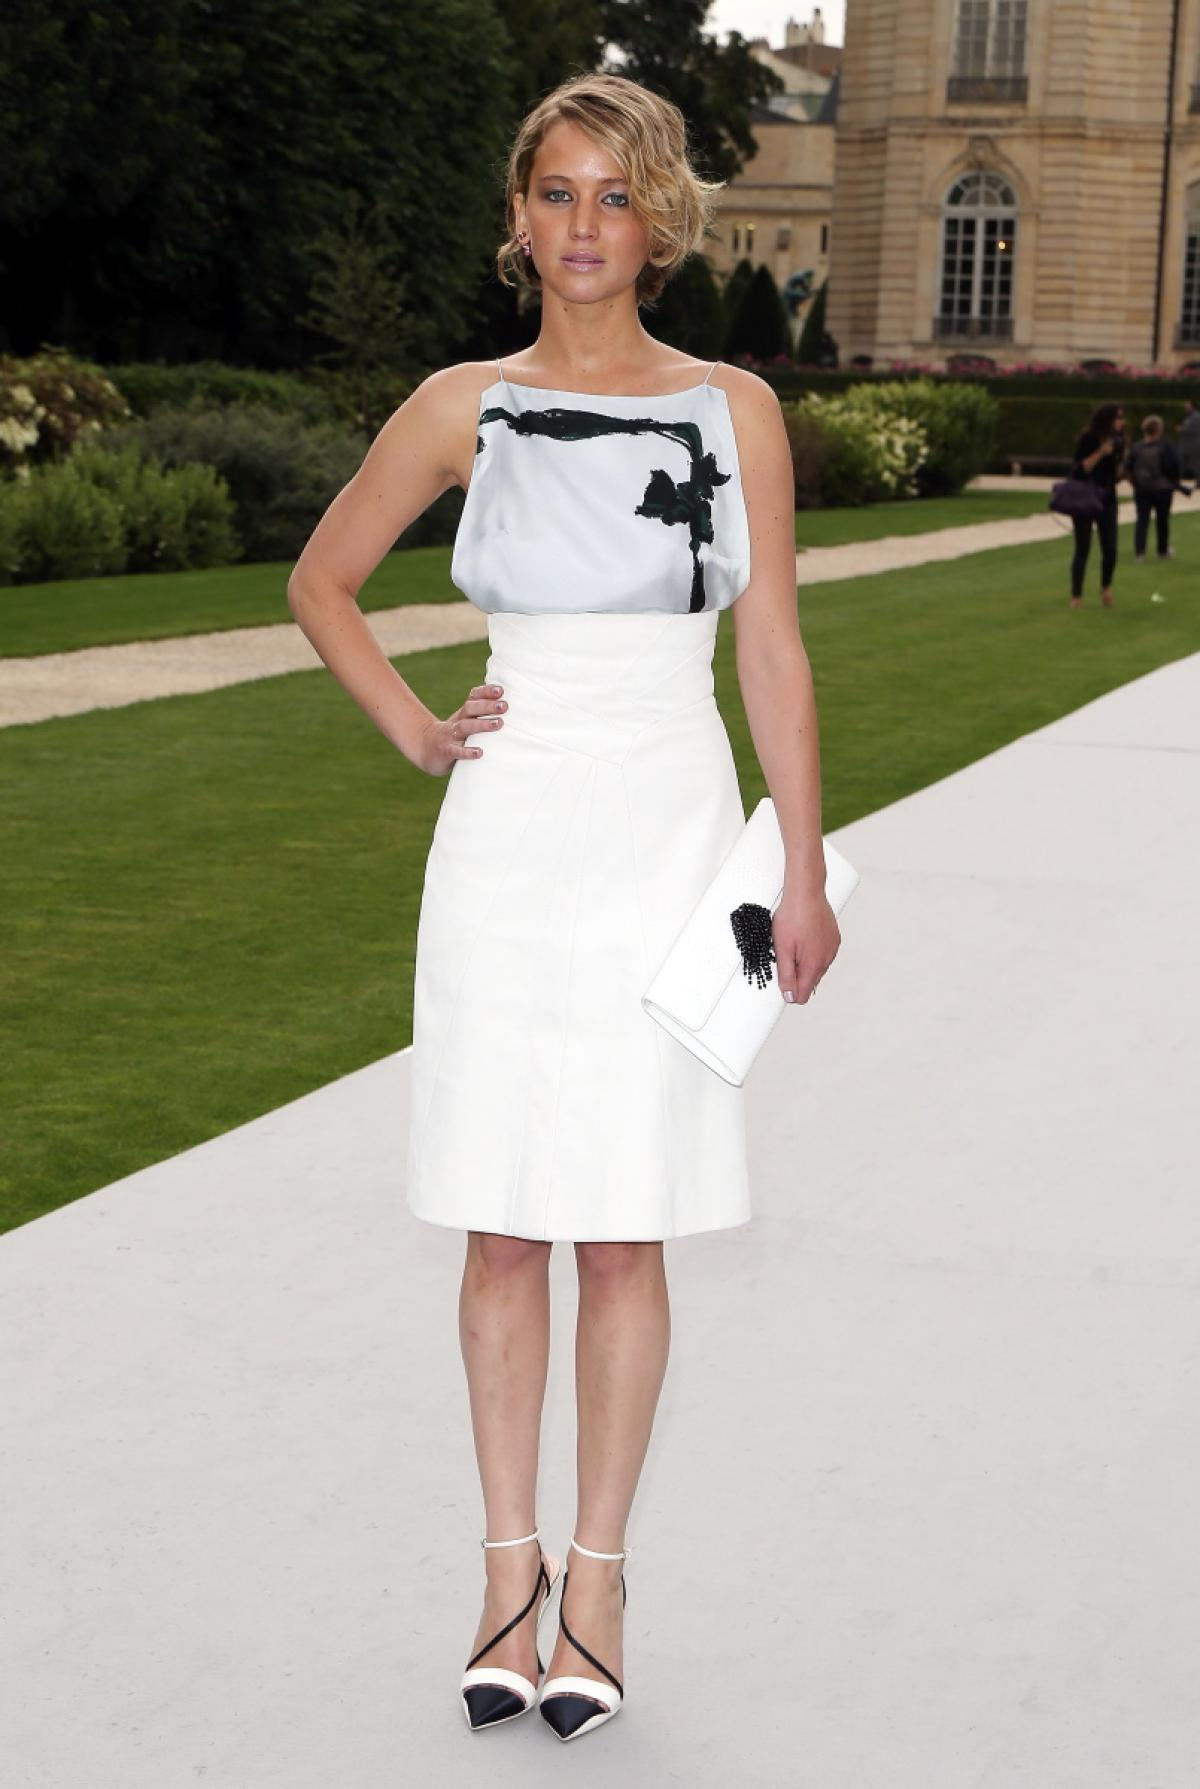 In a white and black dress at The Christian Dior Show in Paris on July 7, 2014